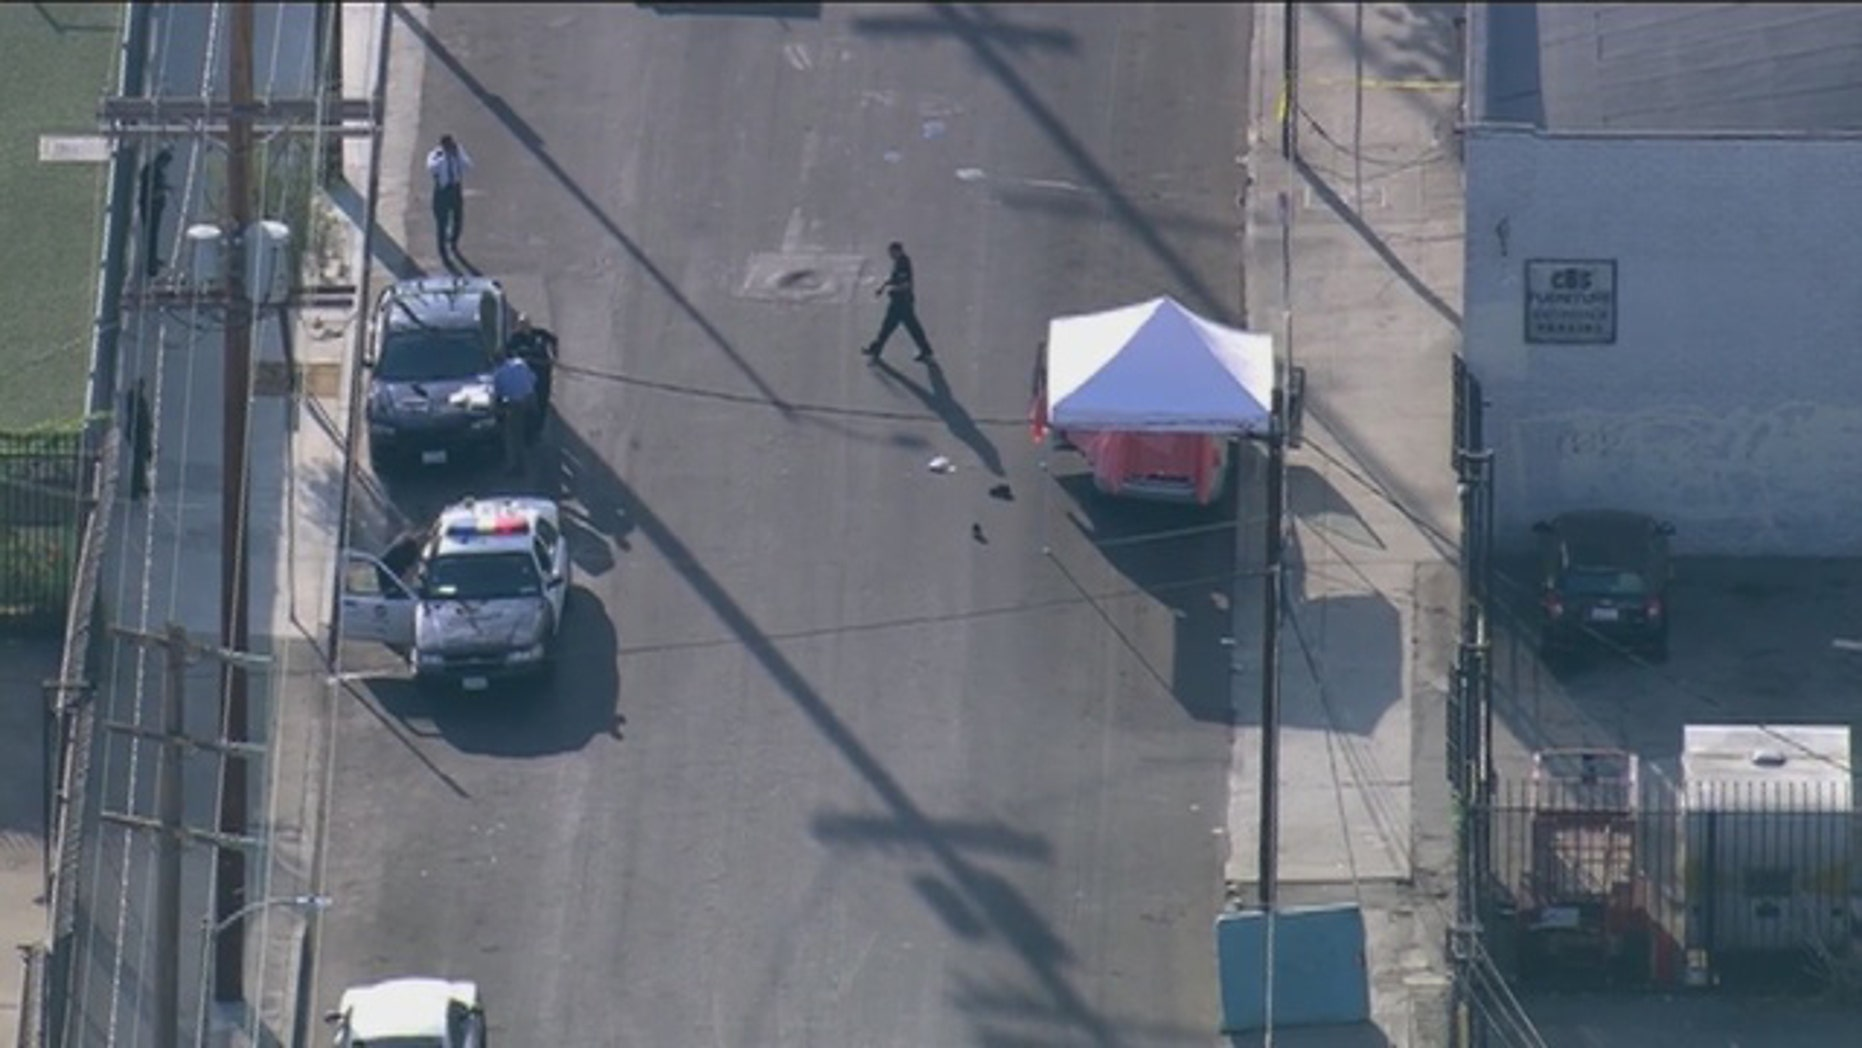 Sept. 9, 2015: Los Angeles police investigate the scene of a triple homicide in which three boys between the ages of 8 and 12 were stabbed to death. (KTTV)